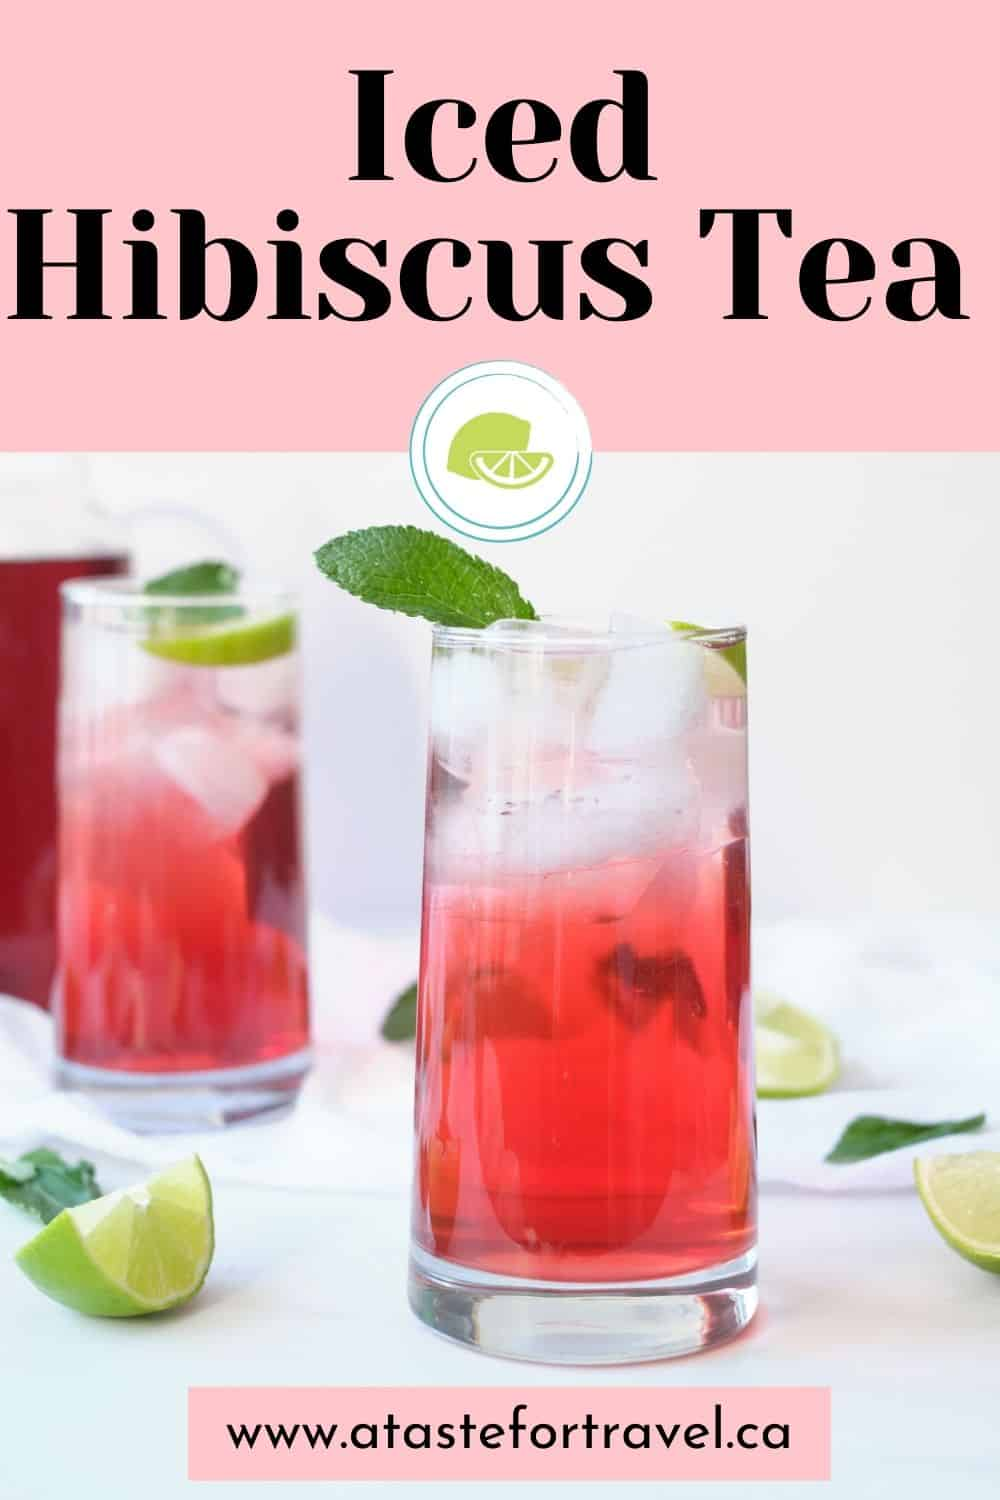 Two glasses of cold brew hibiscus tea on ice with Pinterest text overlay.